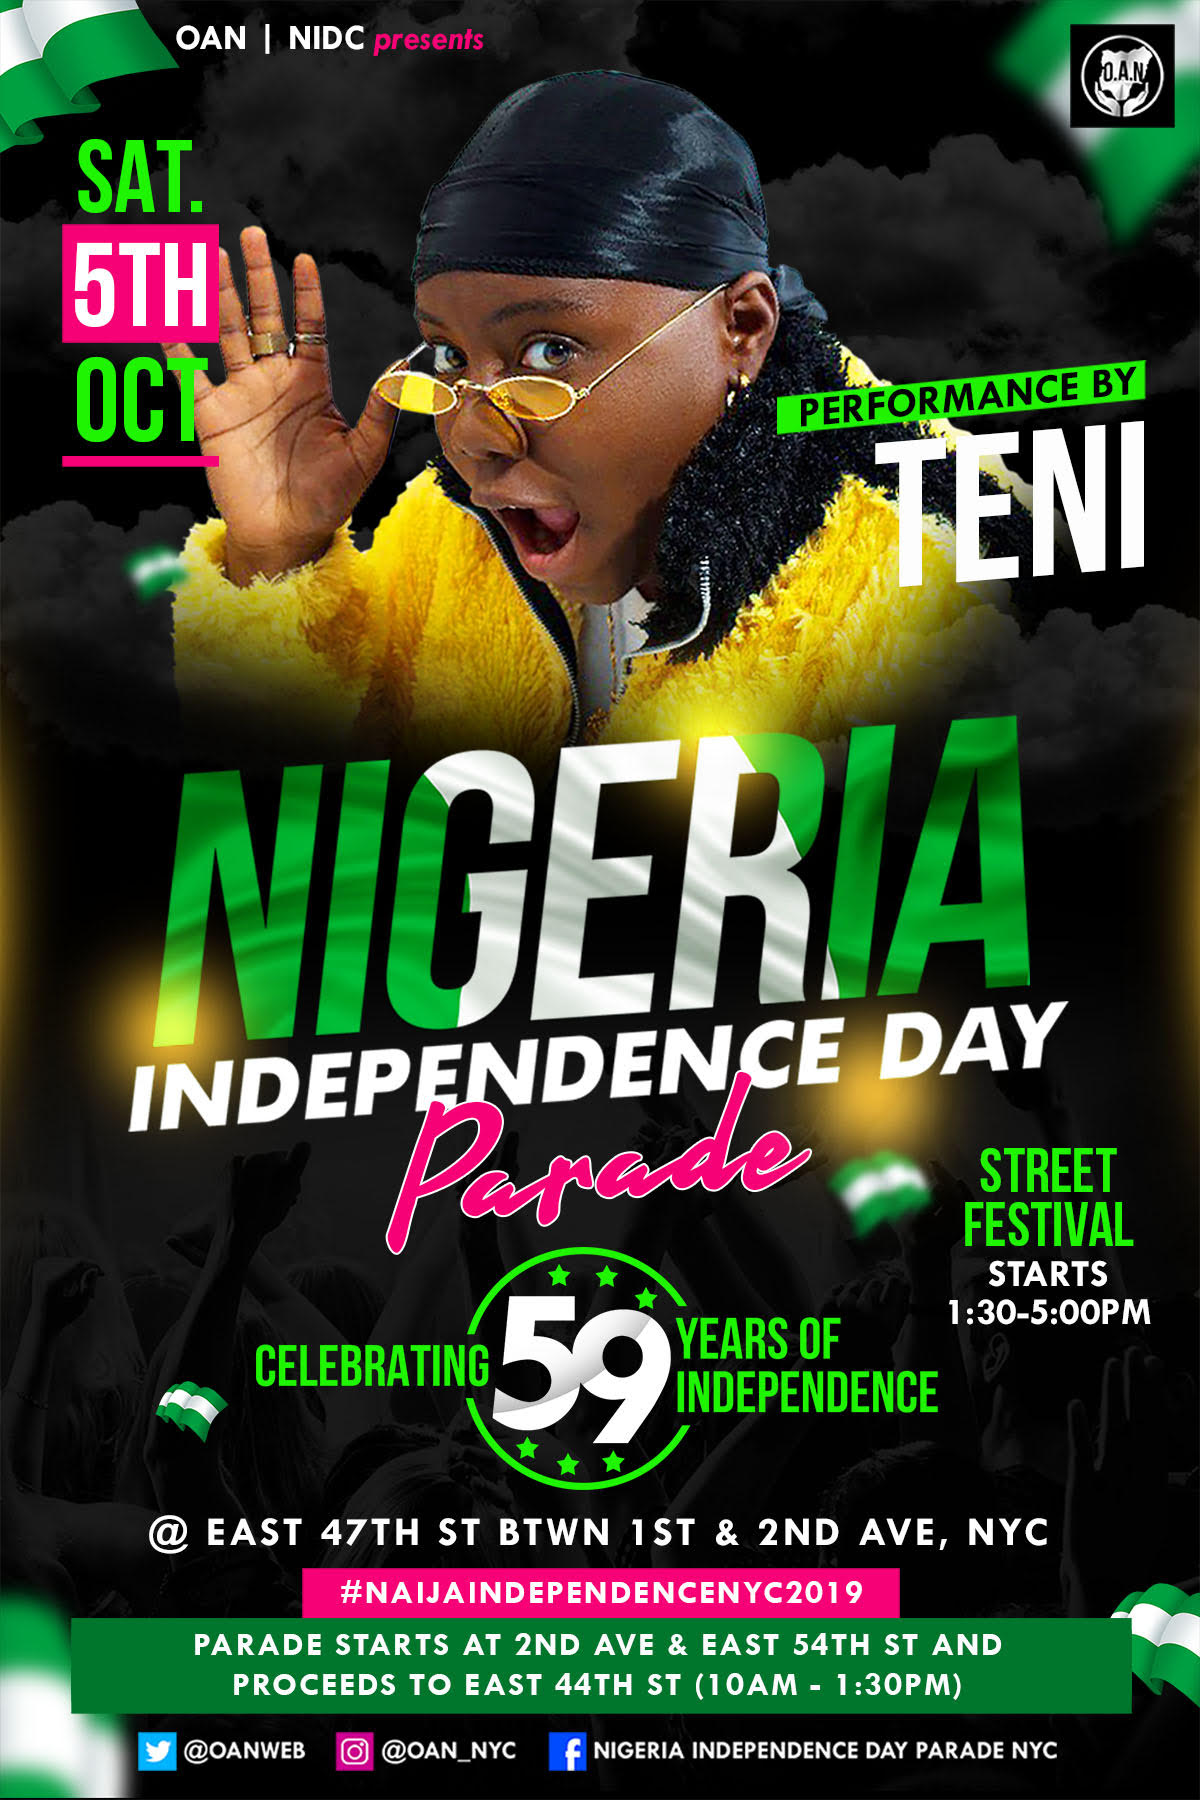 NYC NIGERIAN INDEPENDENCE DAY PARADE & CARNIVAL